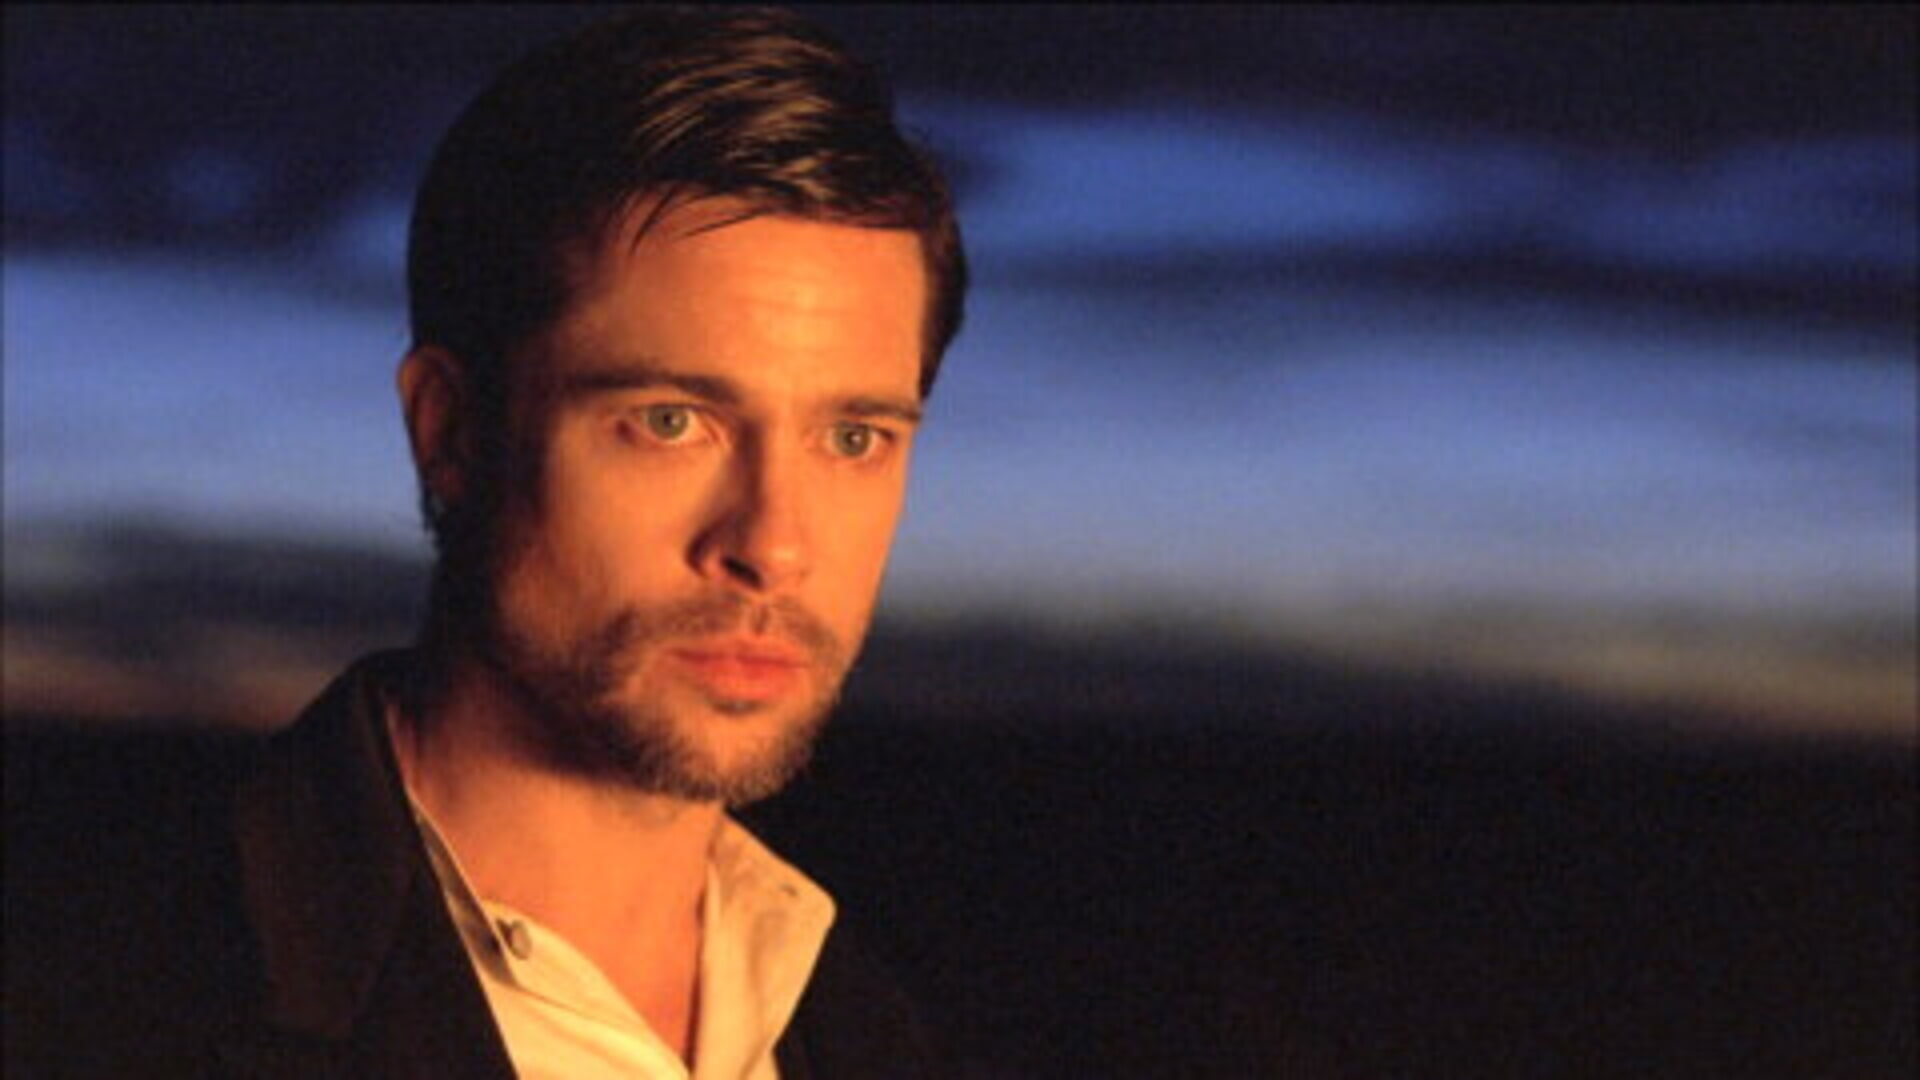 The Assassination of Jesse James by the Coward Robert Ford - Image 19